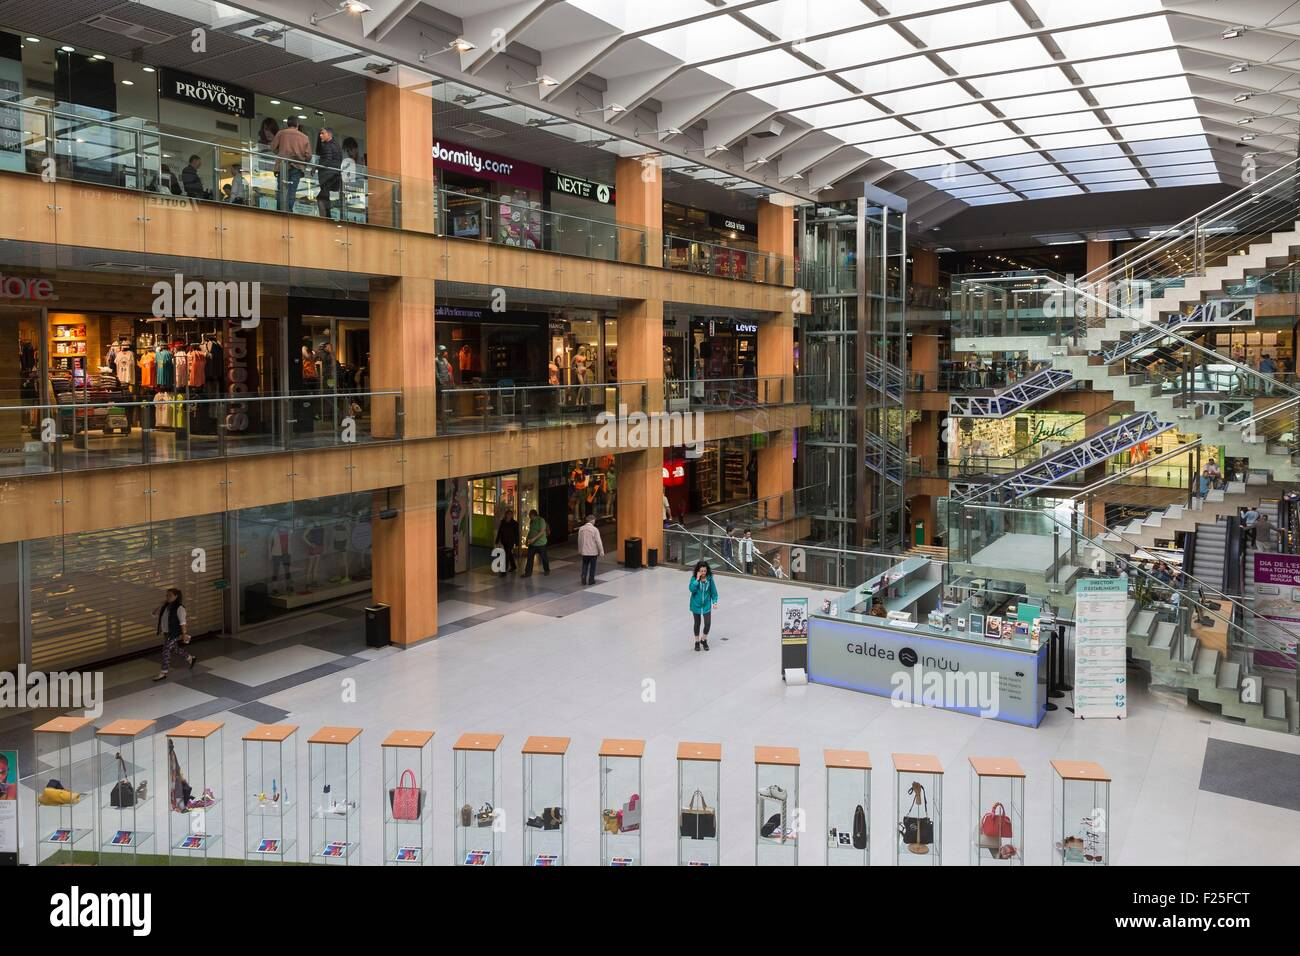 Andorra, Andorra La Vella, capital city of Andorra state, Escaldes Engordany, a mall - Stock Image